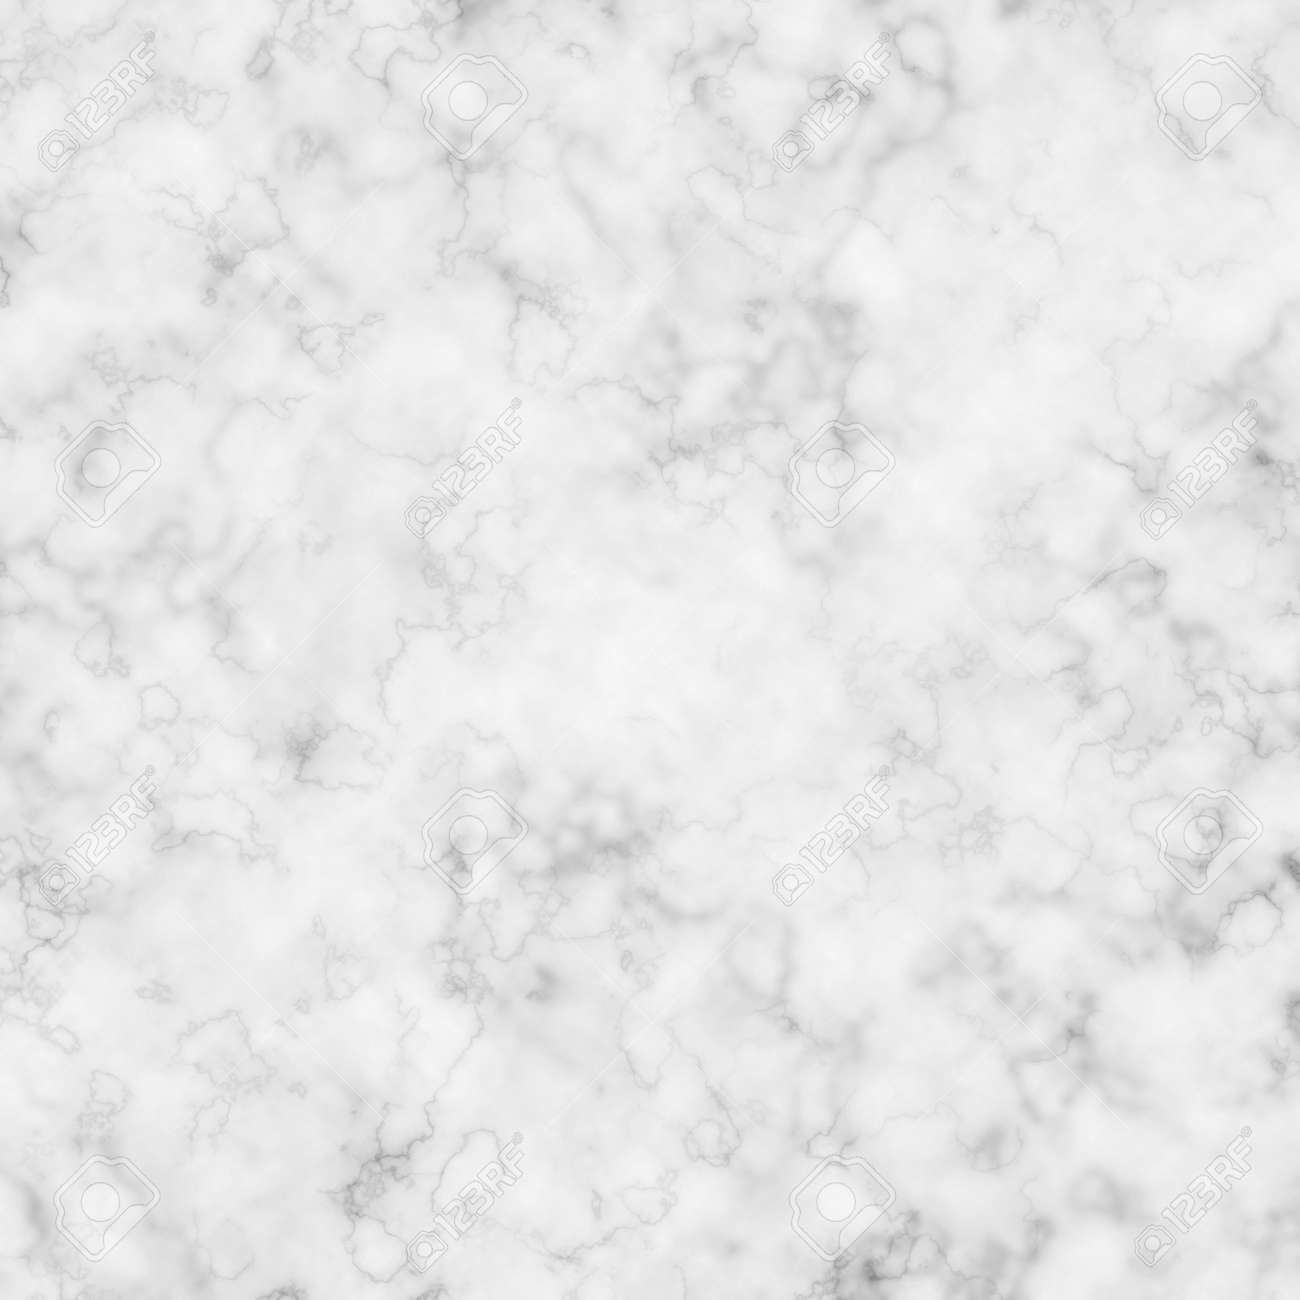 White Marble Wall Texture Background Stock Photo Picture And